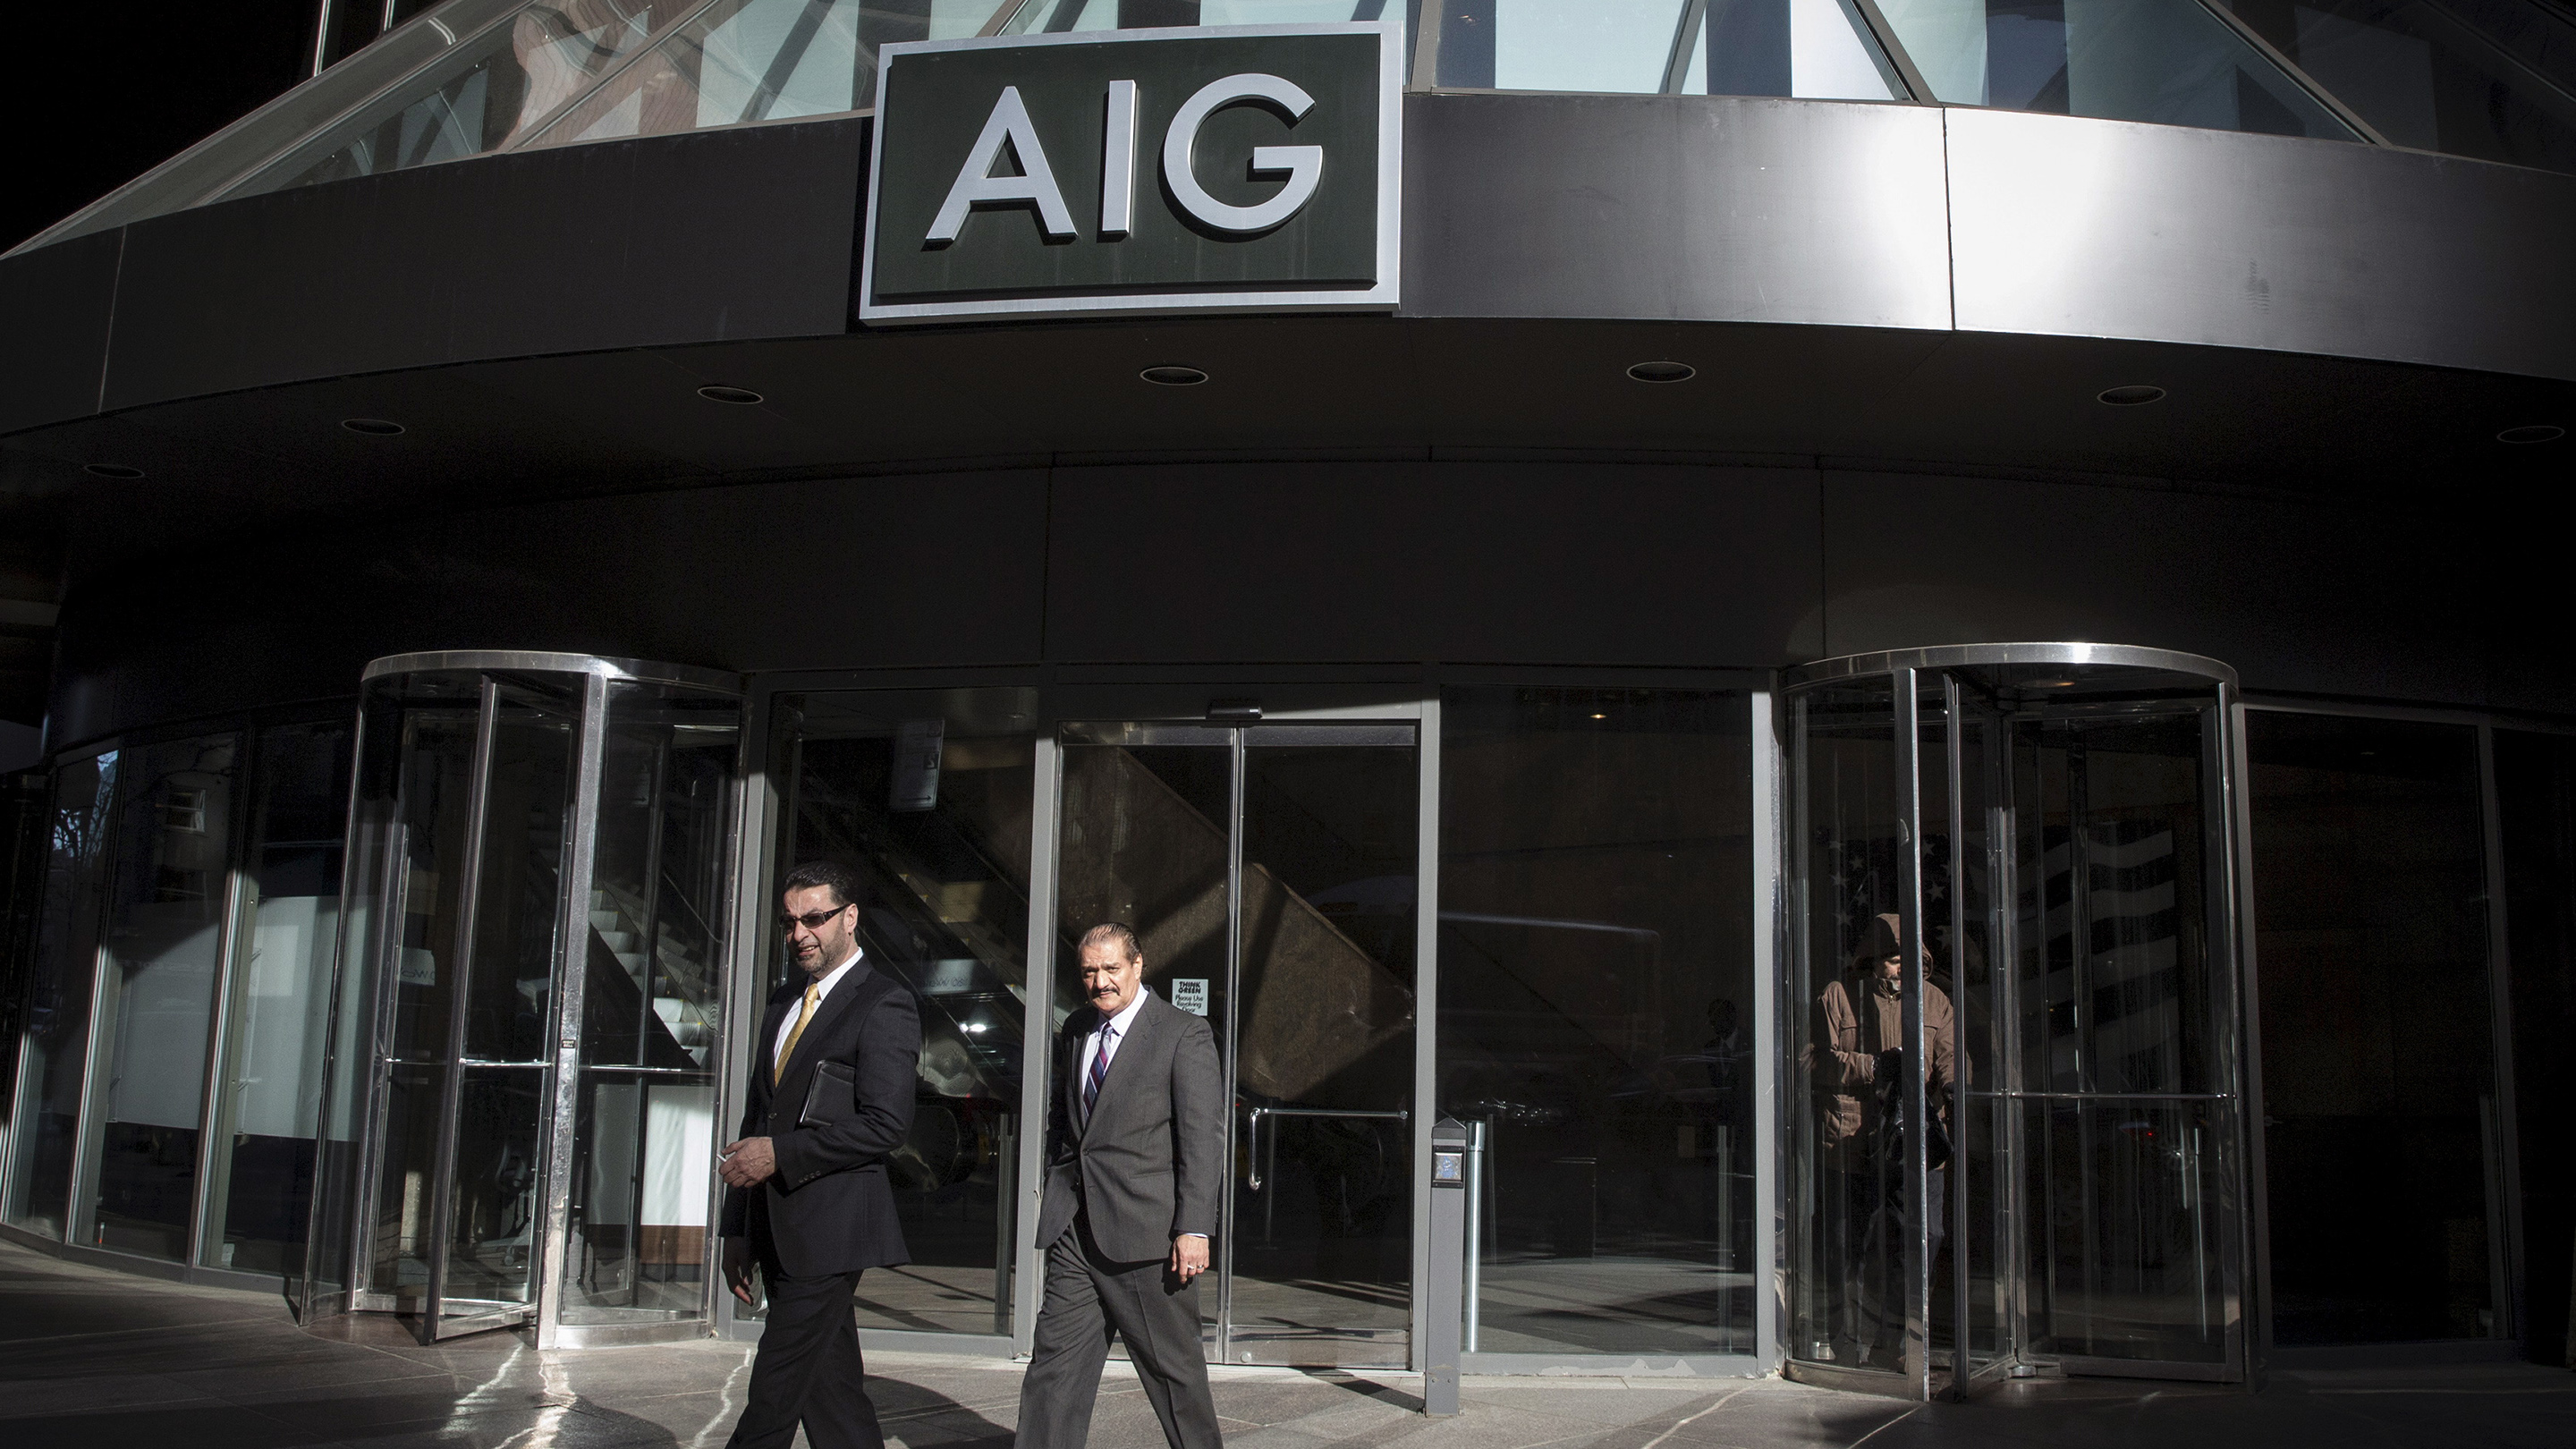 People exit the AIG building in New York's financial district